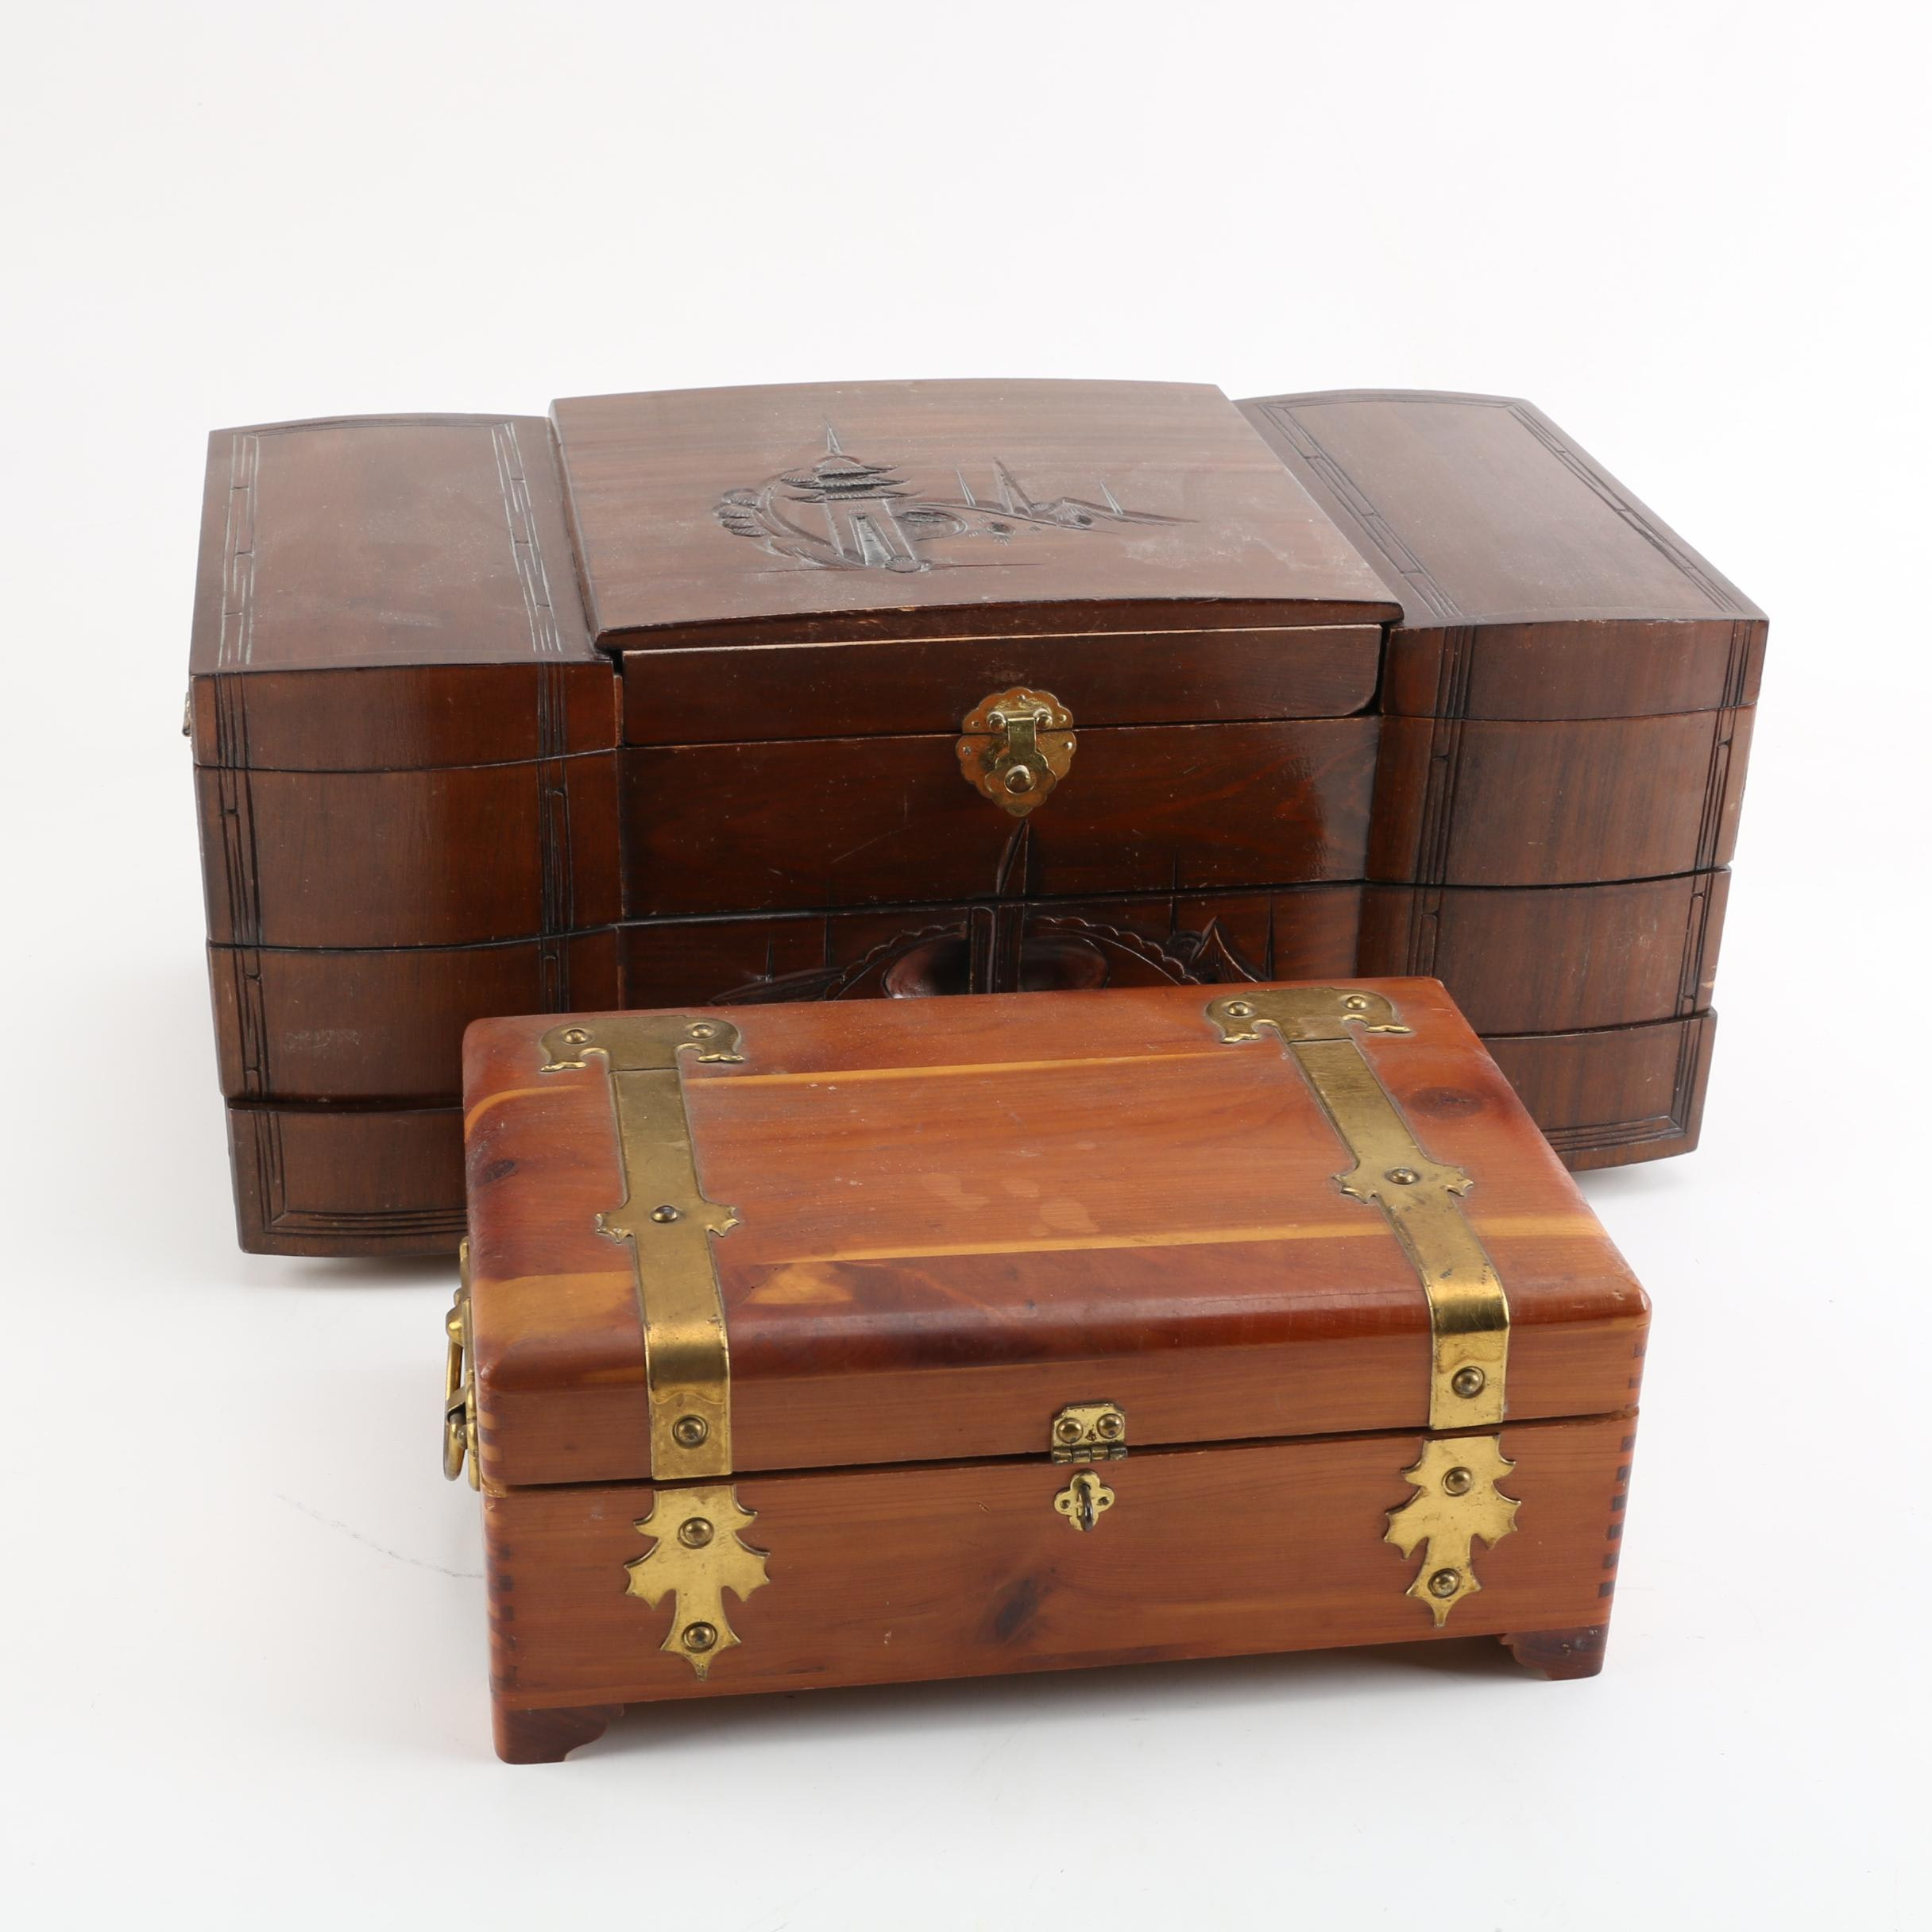 Wood and Metal Jewelry Boxes with Mirrors